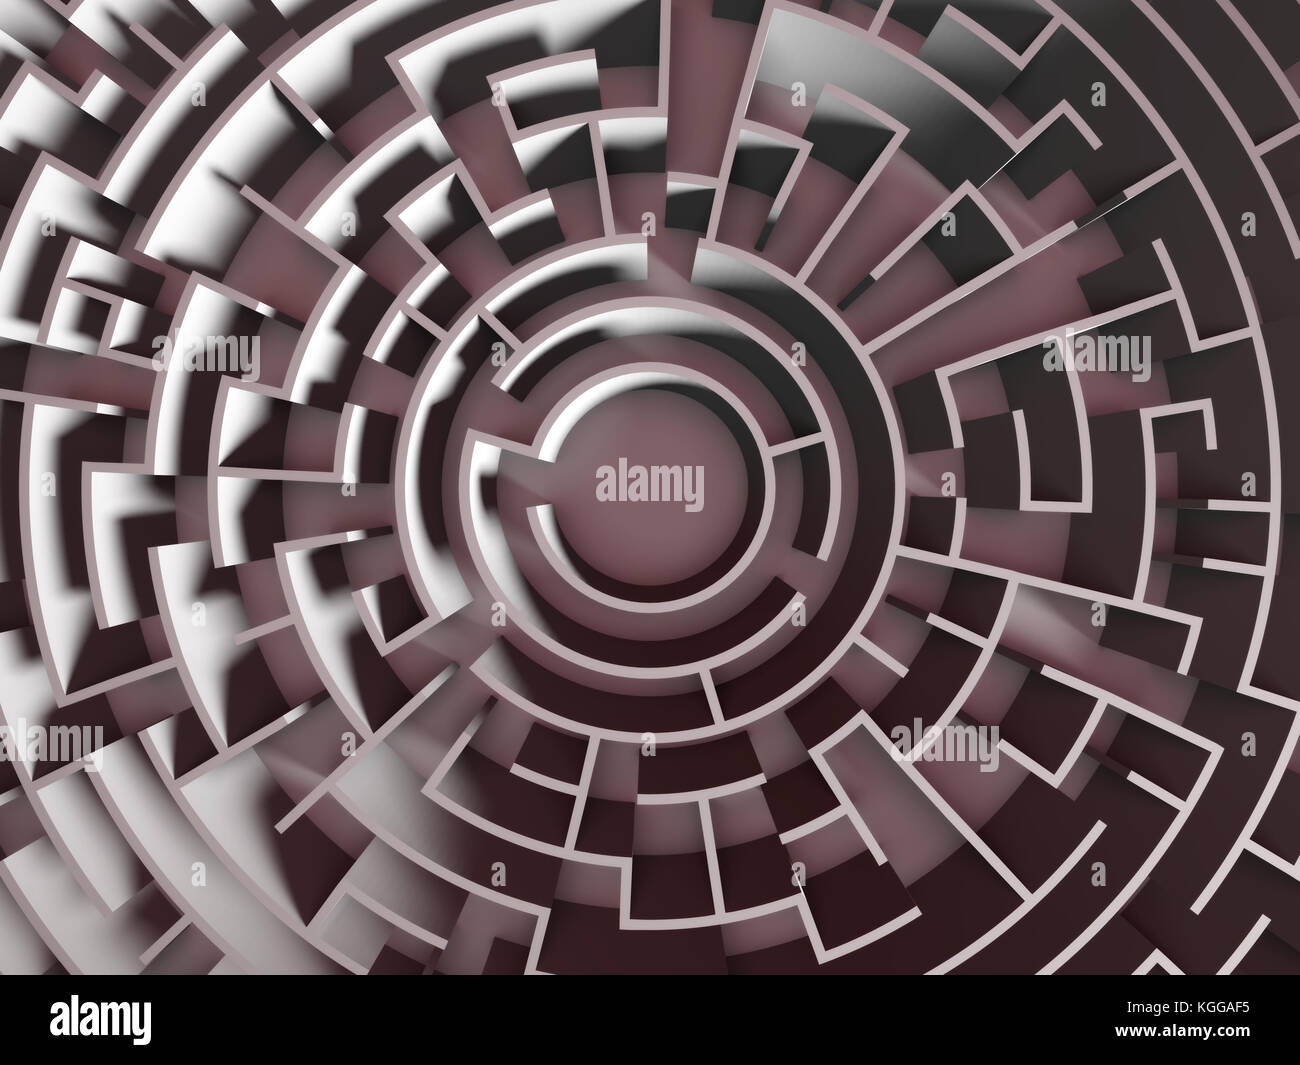 Grand labyrinthe circulaire (structure 3d illustration) Banque D'Images